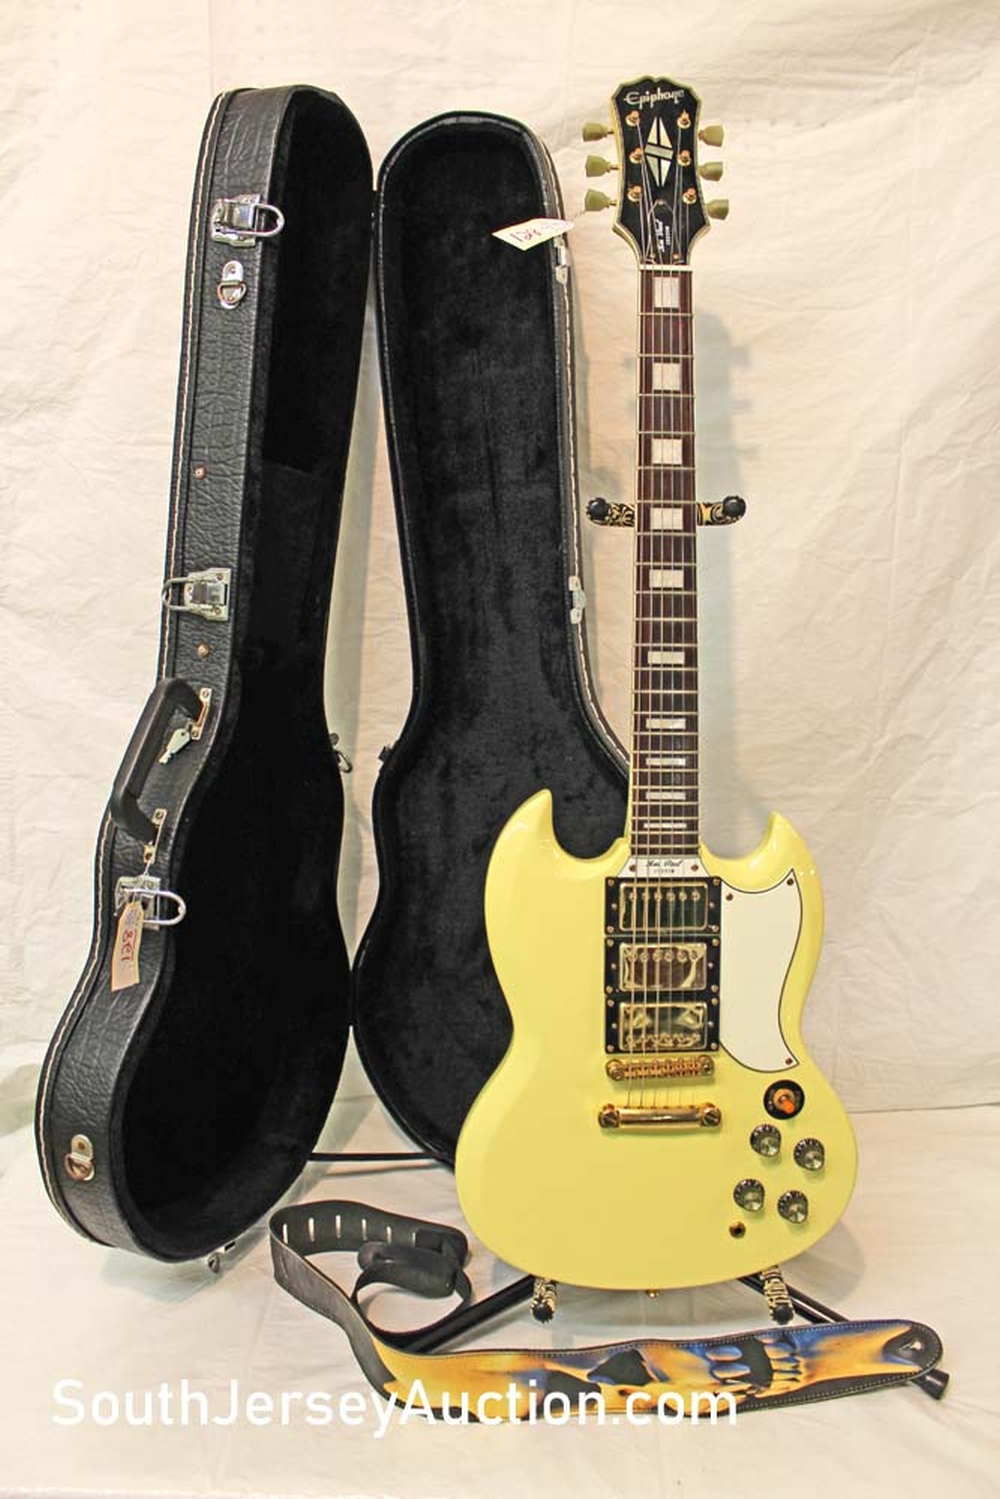 1999 Epiphone SG, Very RARE Les Paul Custom with triple pickups, gold hardware, set neck, with original hard shell case s/n # 199040165, creamy yellow no belt rash no pick up scratches, match strap, made in Korea, with strap and hard shell case, excellent condition